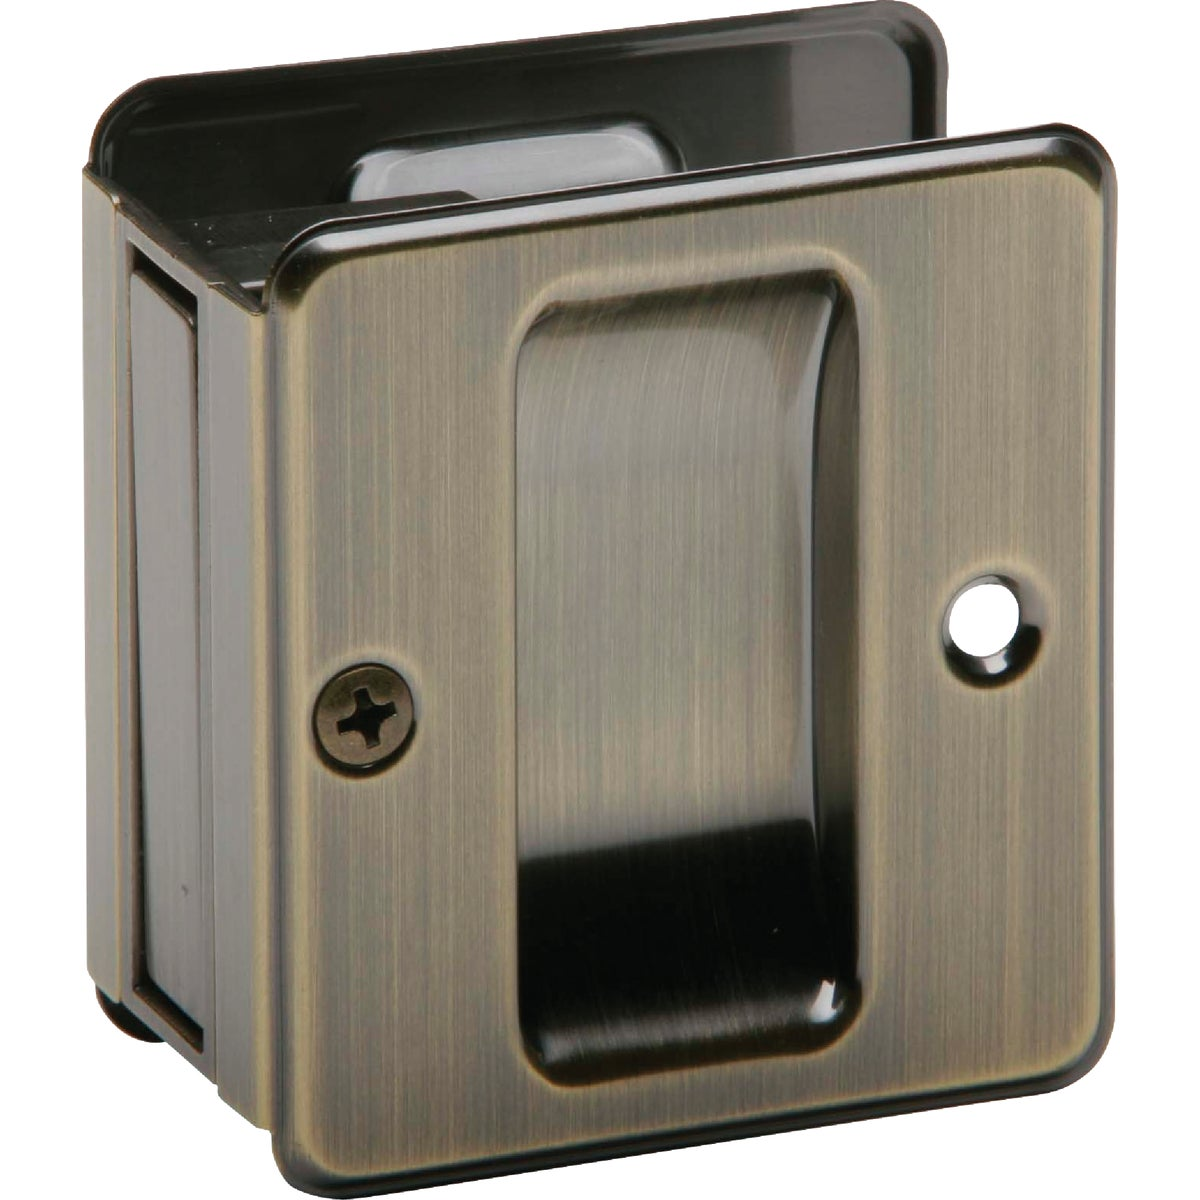 AB PASS POCKET DOOR PULL - SC990B-609 by Schlage Lock Co